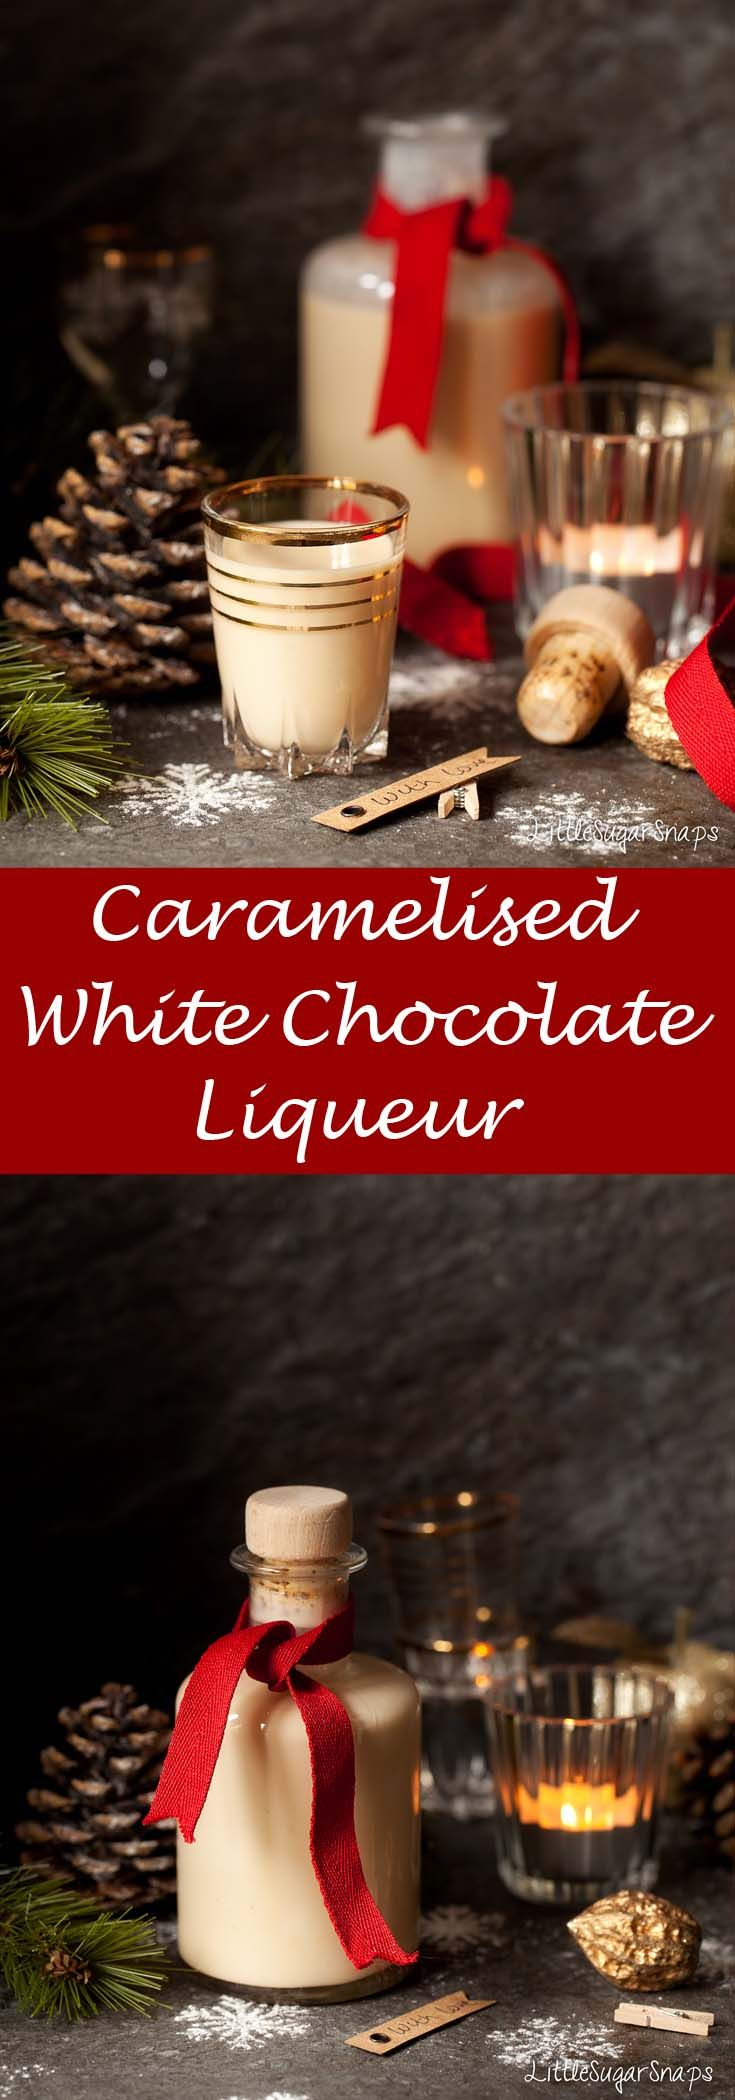 Caramelised White Chocolate Liqueur is an elegant, creamy white chocolate & vodka liqueur with undertones of caramel. It makes a wonderful foodie gift.